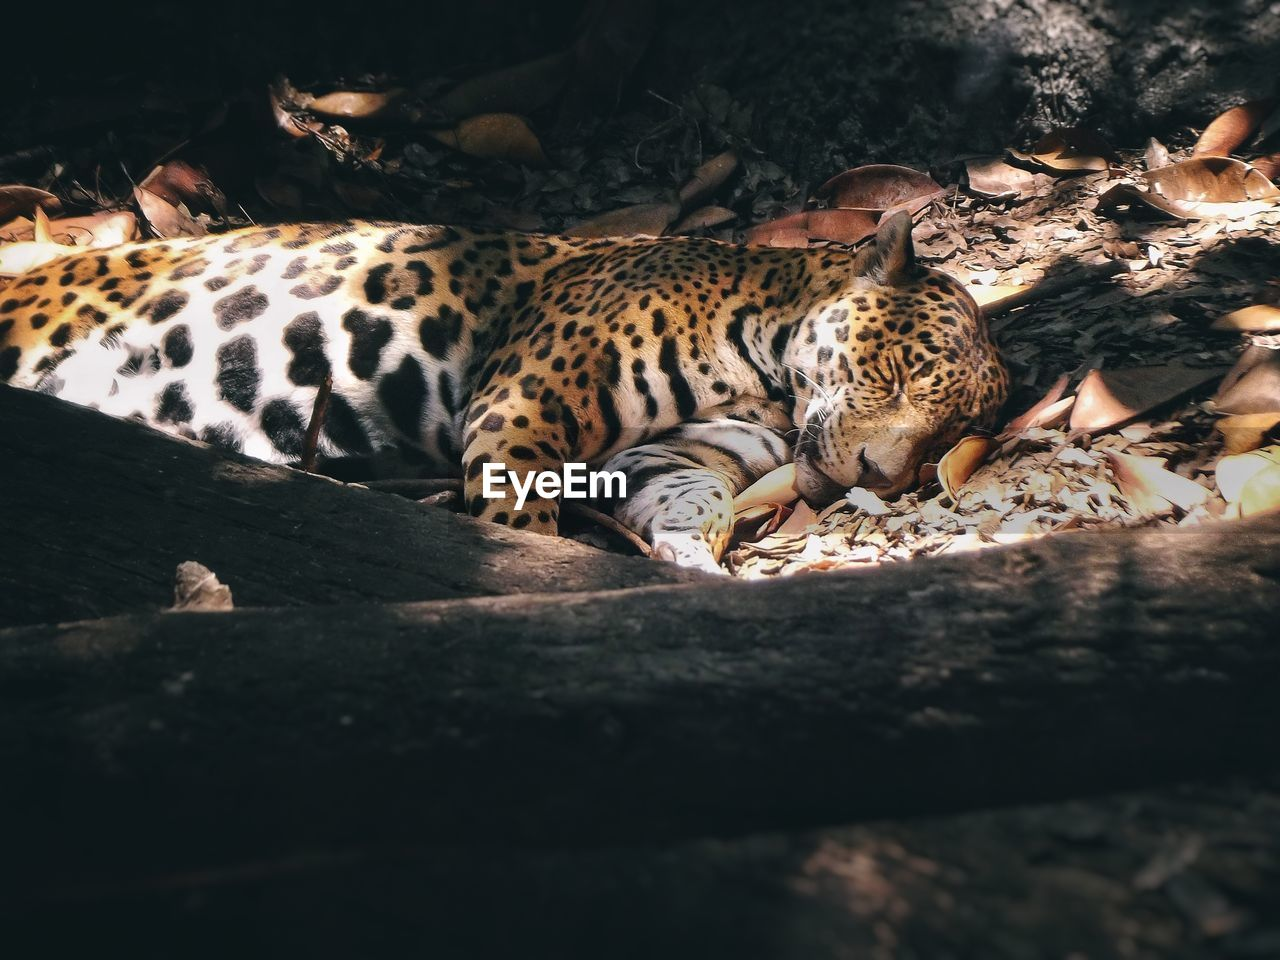 animal, animal themes, mammal, feline, vertebrate, relaxation, big cat, animals in the wild, animal wildlife, no people, selective focus, carnivora, day, cat, one animal, nature, animal markings, resting, wood - material, lying down, whisker